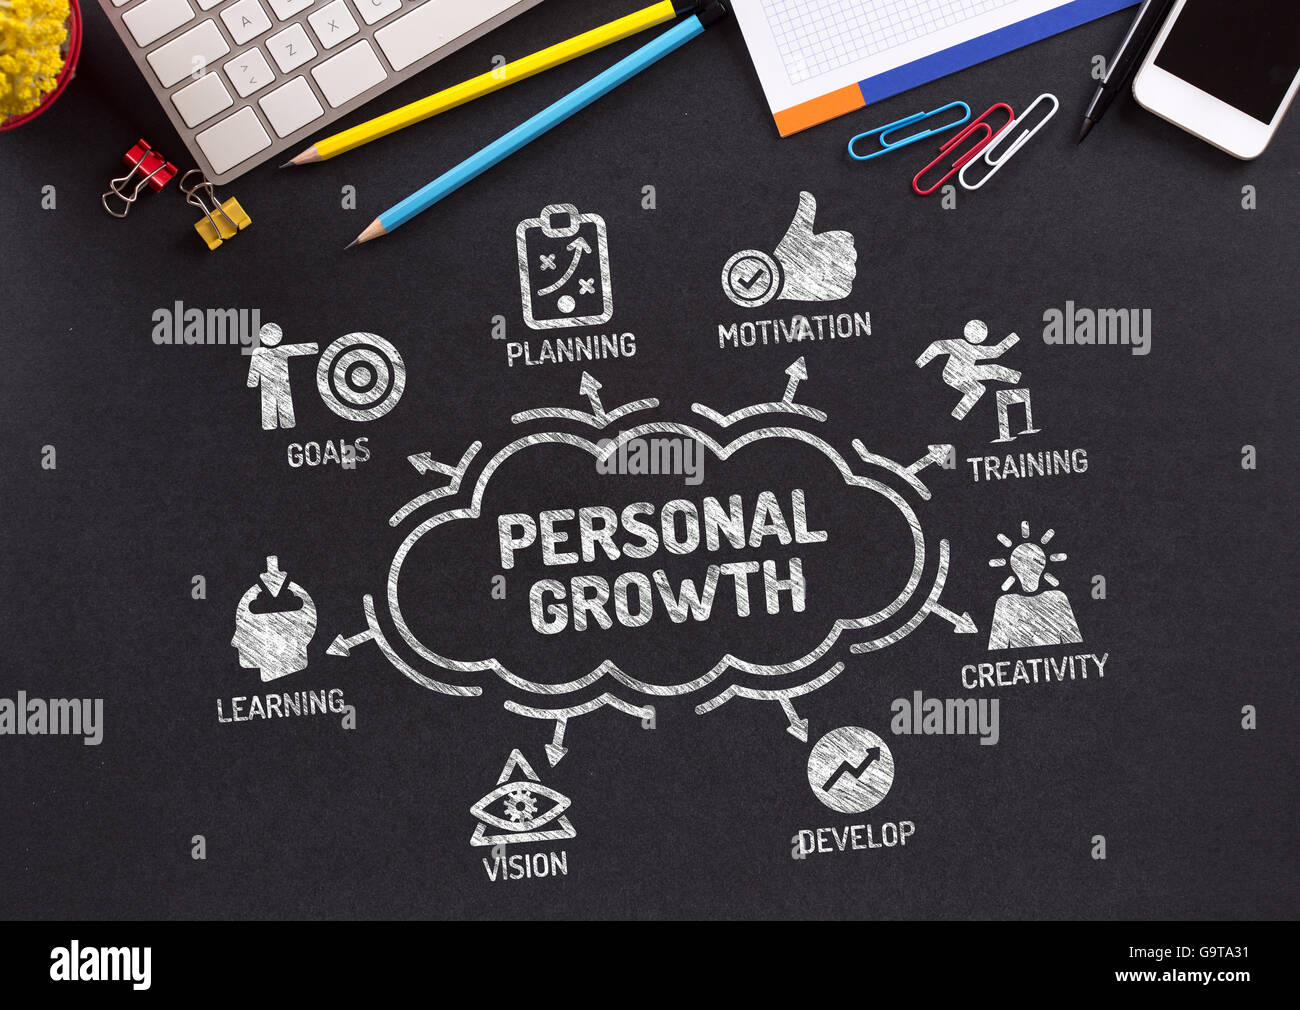 Personal growth concept chart with keywords and icons on white personal growth chart with keywords and icons on blackboard stock photo nvjuhfo Choice Image